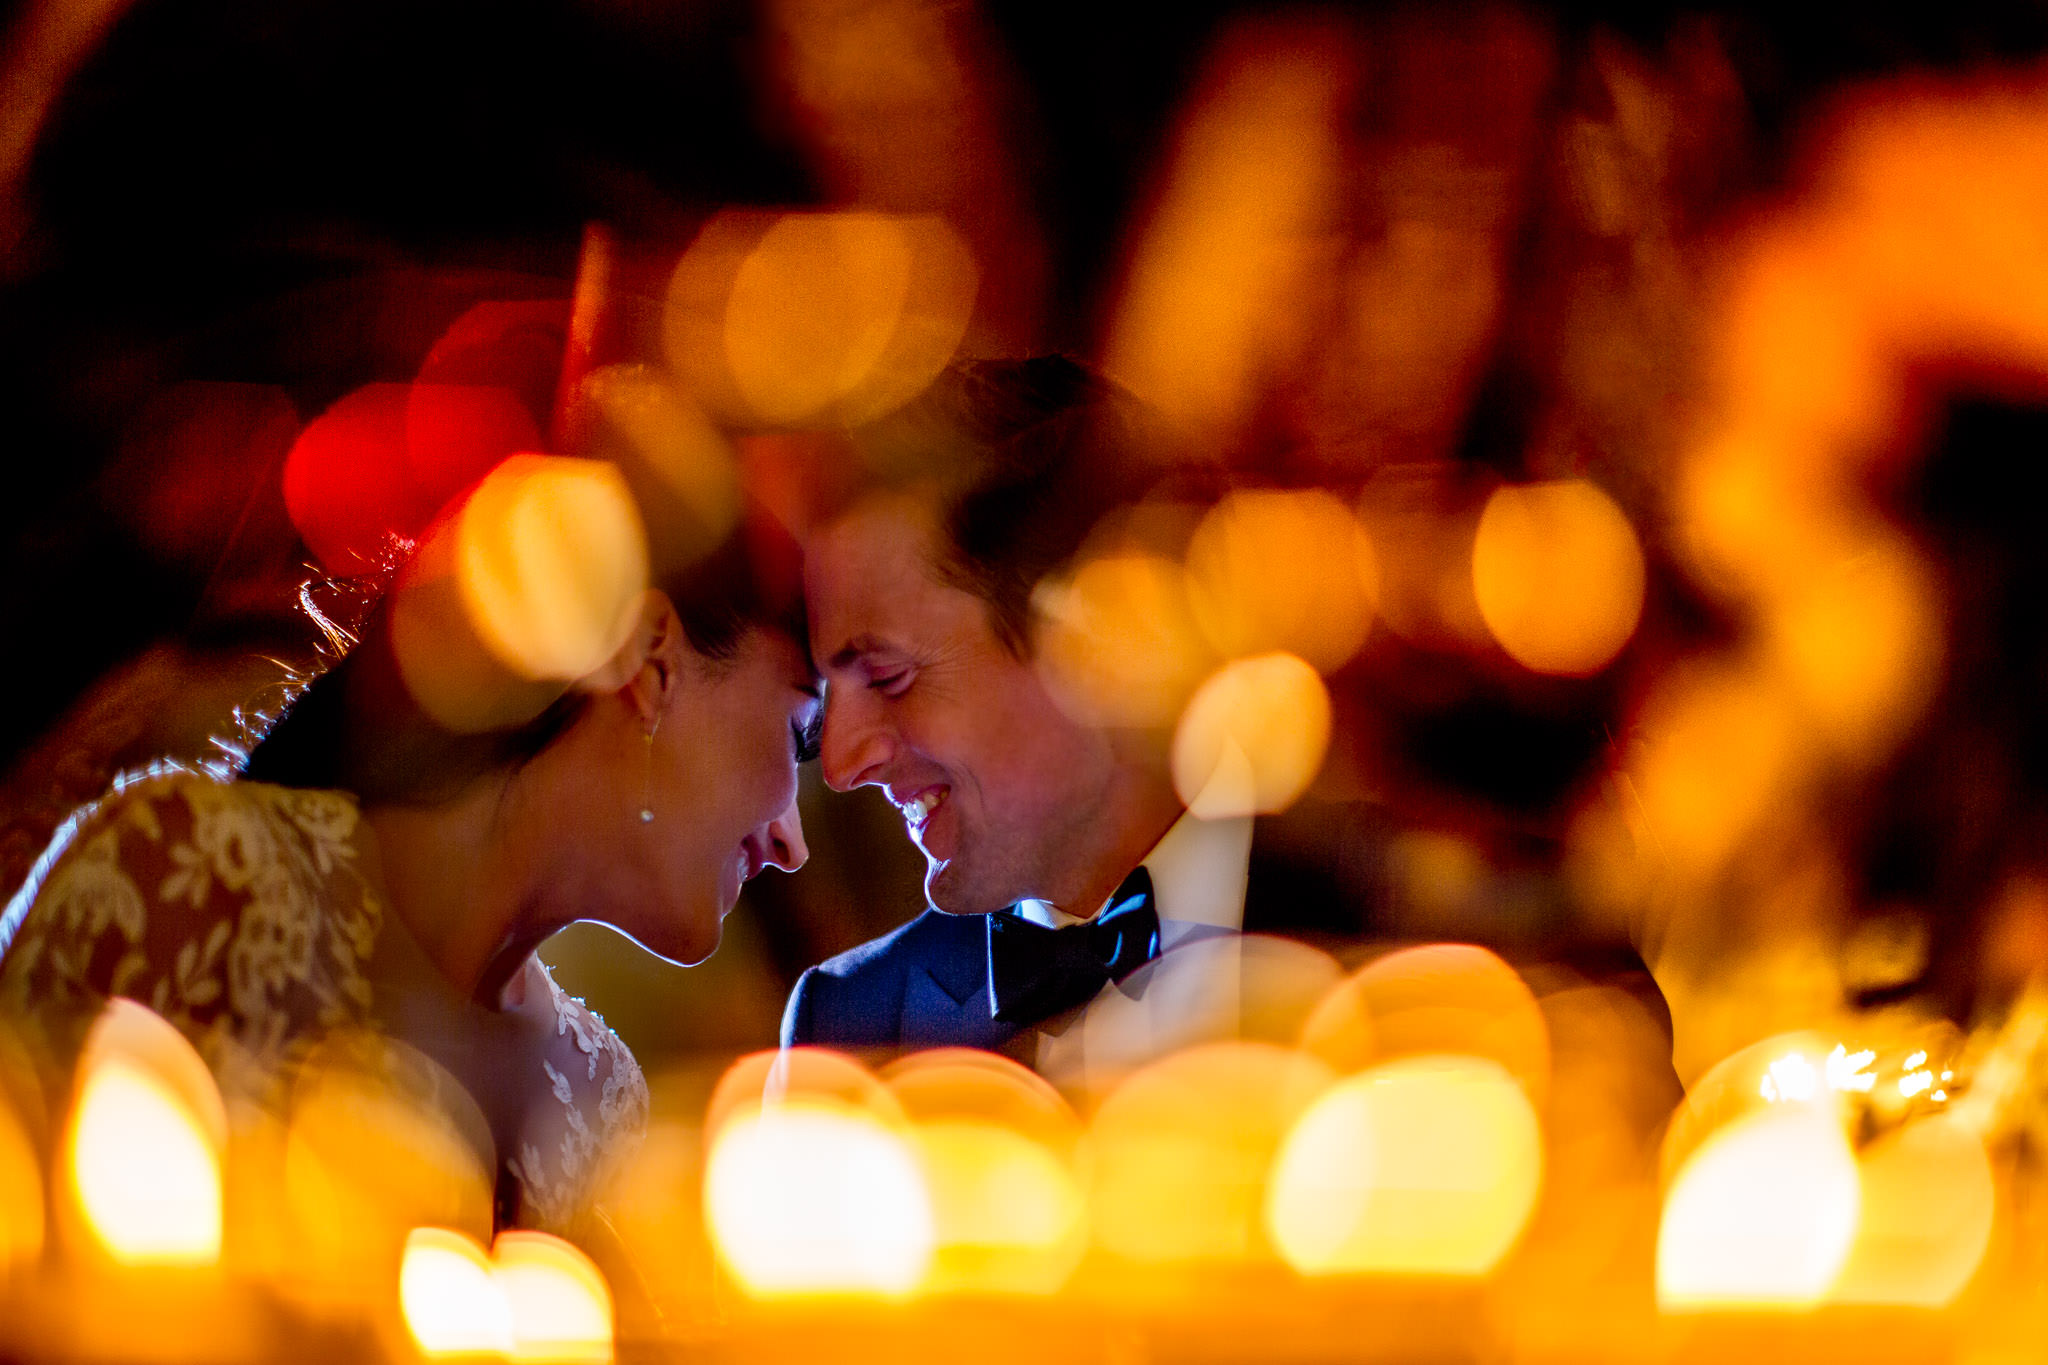 Bride and Groom laughing and embracing through candle light at Villa Cimbrone on Amalfi Coast in ItalyBride and Groom laughing and embracing through candle light at Villa Cimbrone on Amalfi Coast in Italy